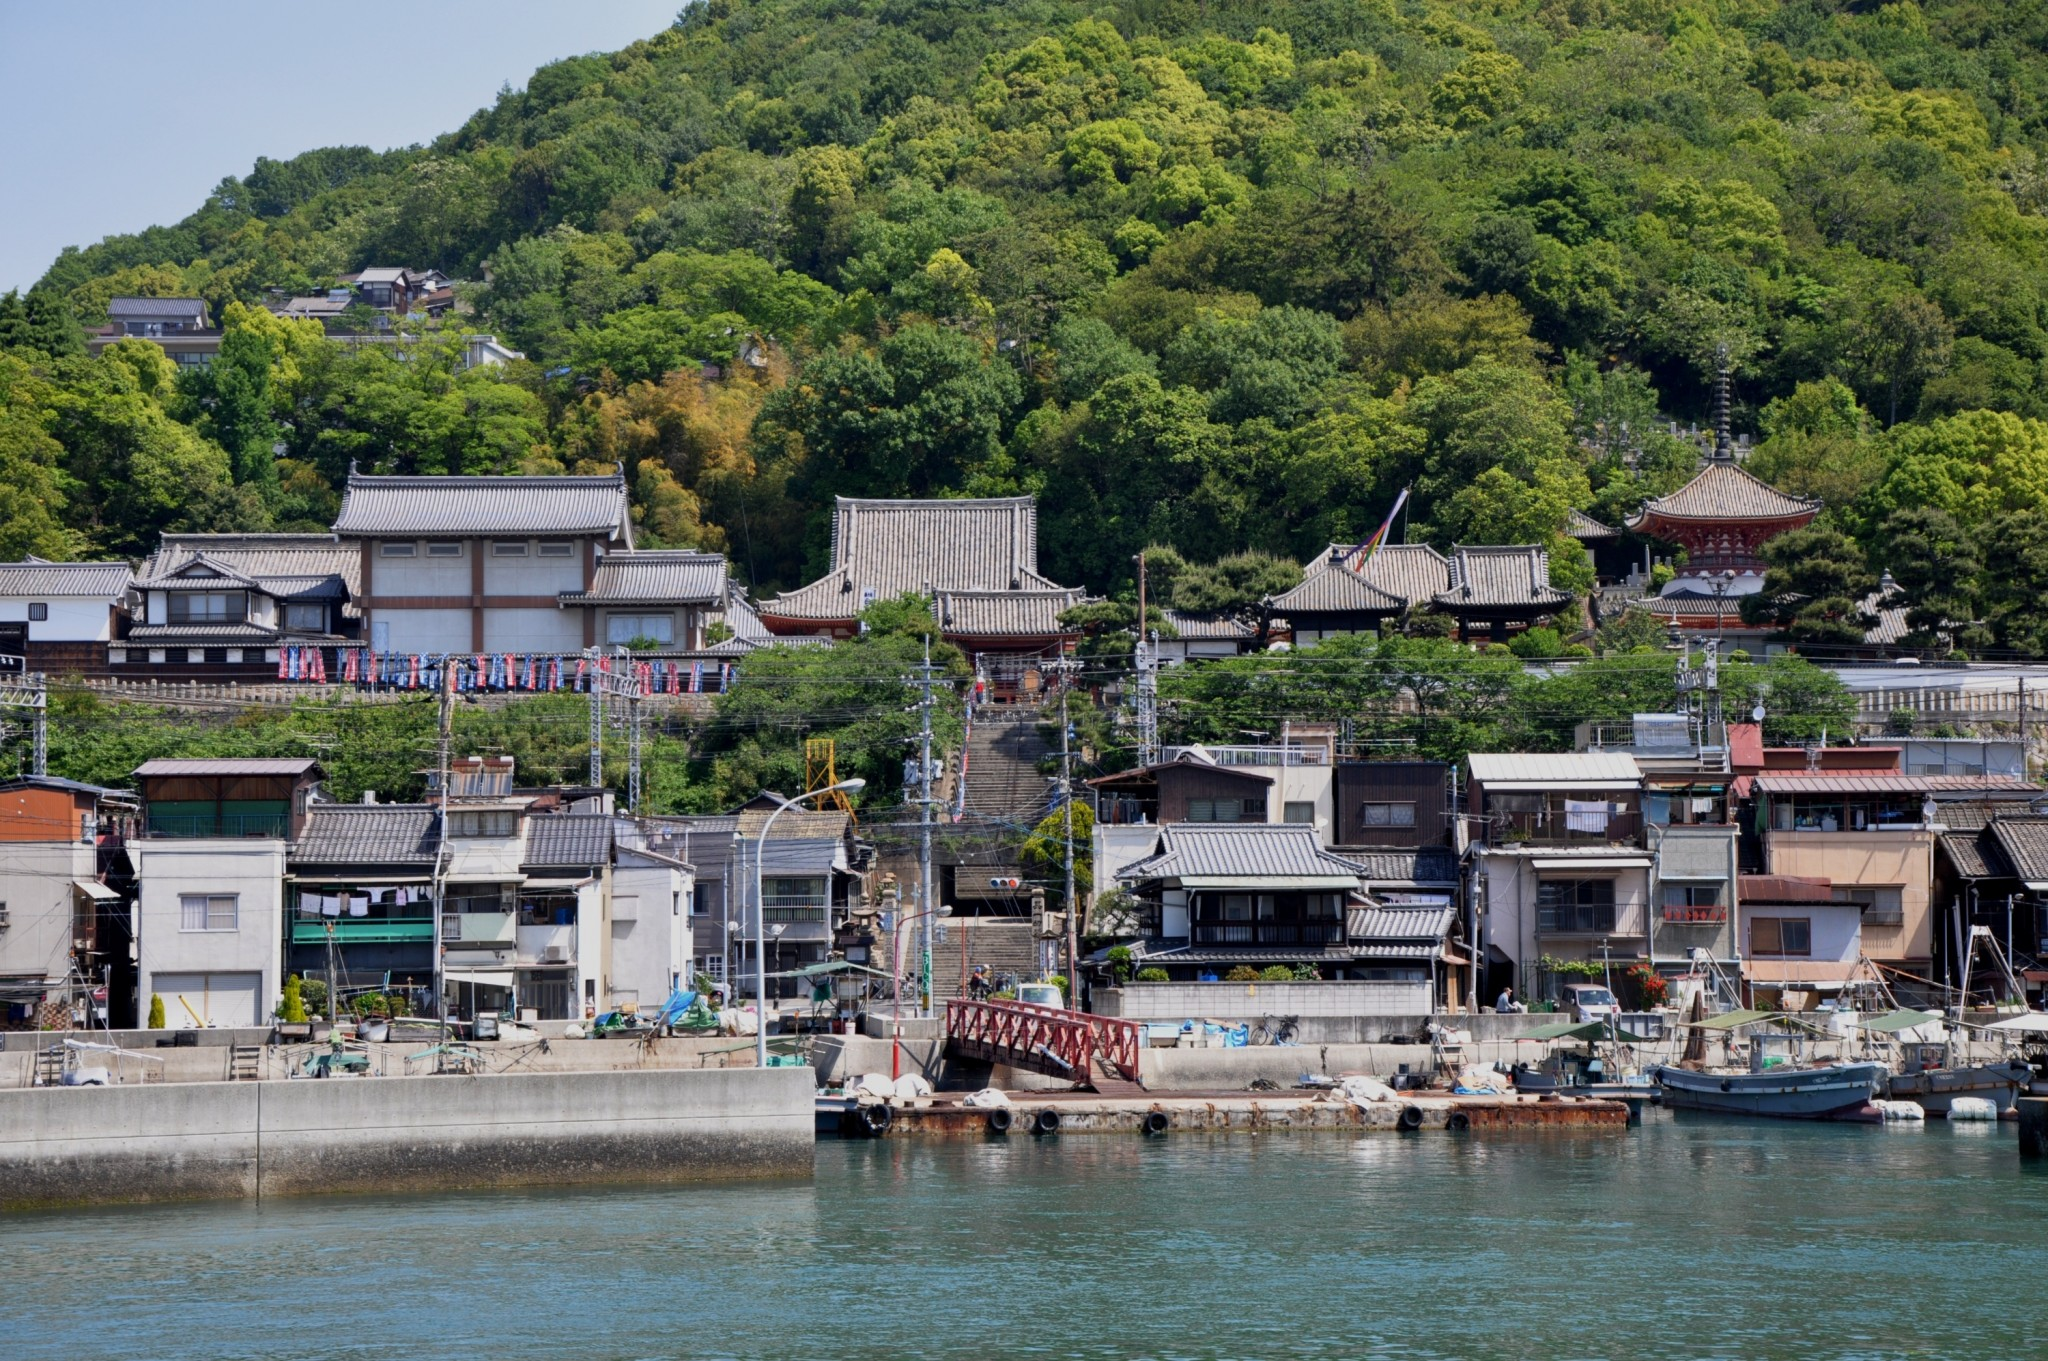 ferry in Onomichi Japan and background of lush greens